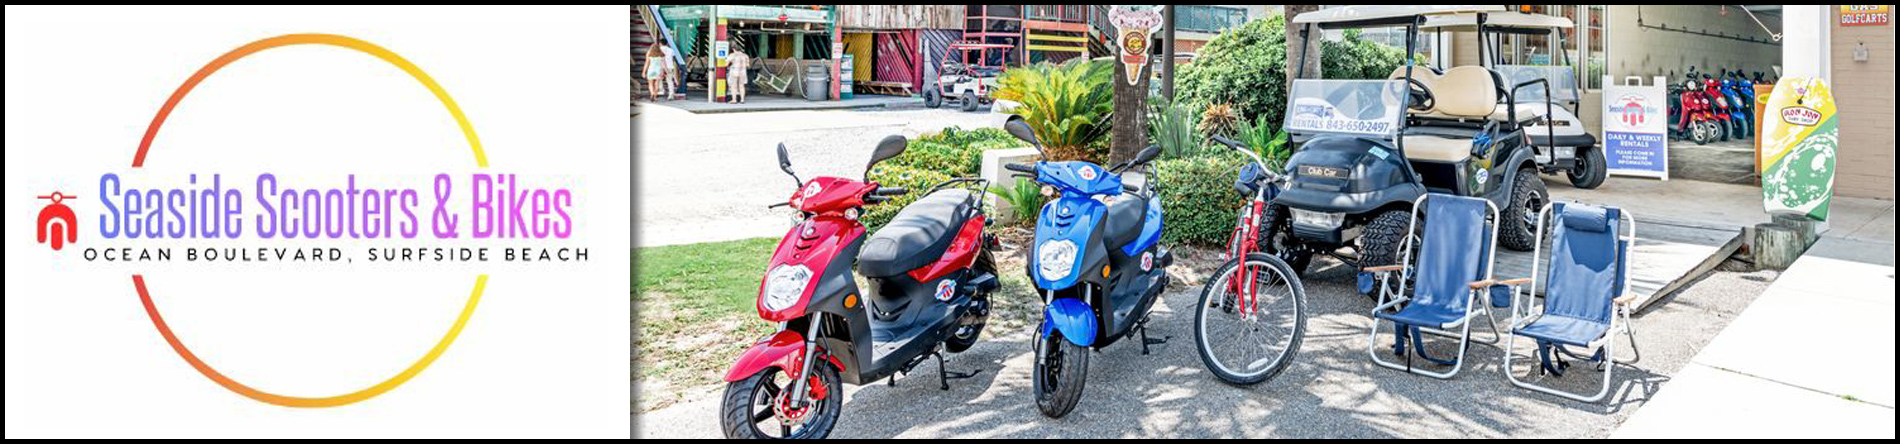 Seaside Scooters & Bikes is a Beach and Scooter Rental Company in Surfside Beach, SC